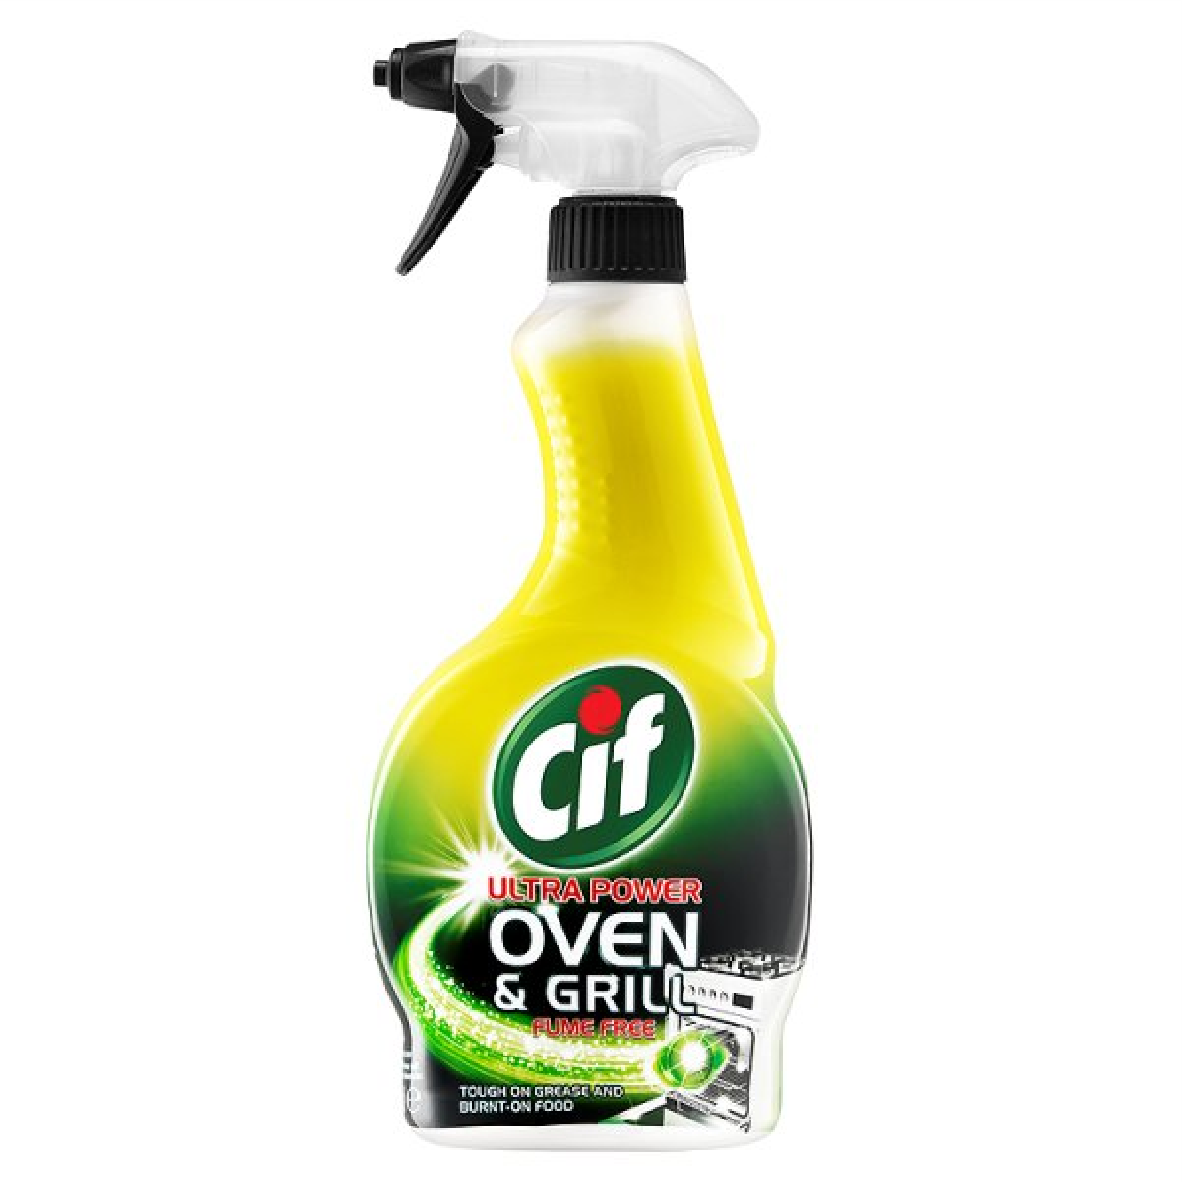 Cif Ultra Power Oven and Grill Cleaner 500ml - product image